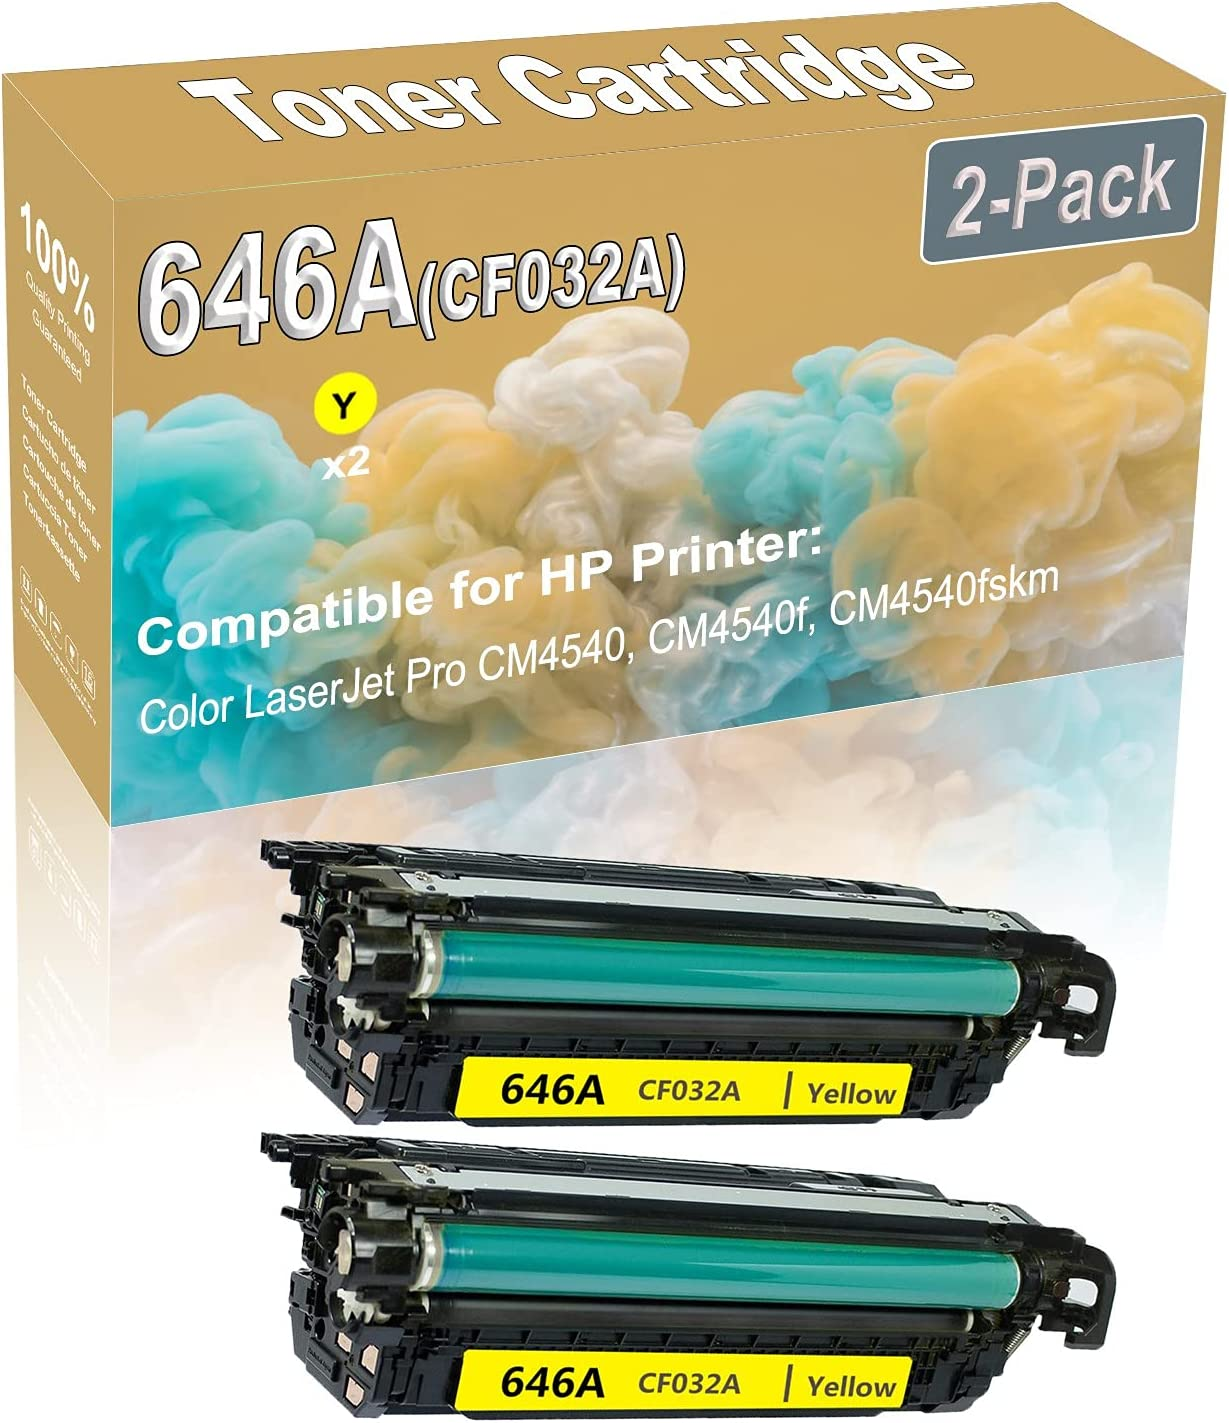 2-Pack (Yellow) Compatible CM4540 CM4540f Laser Printer Toner Cartridge (High Capacity) Replacement for HP 646A (CF032A) Printer Toner Cartridge